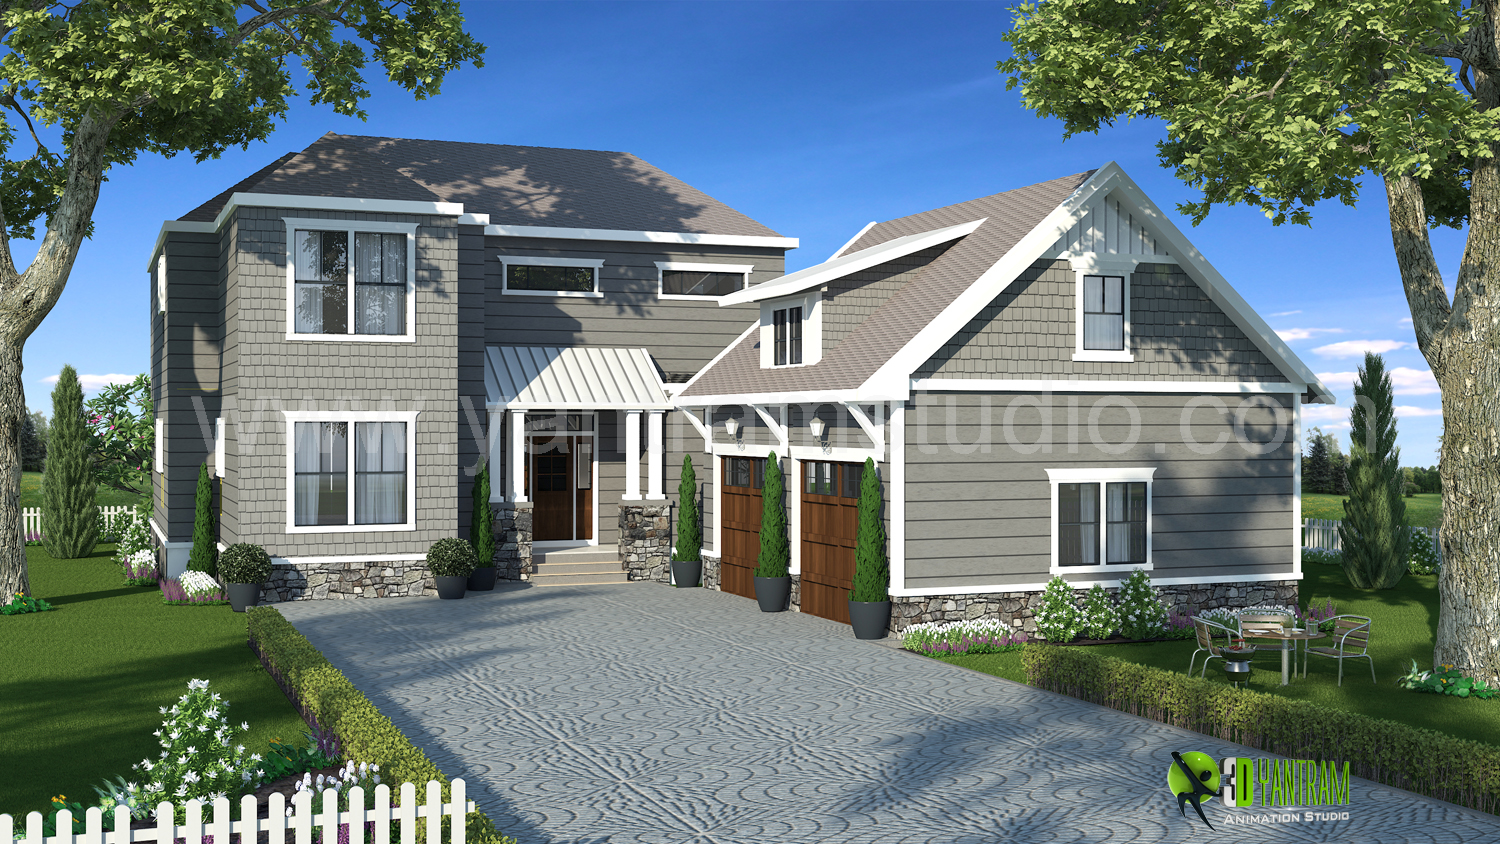 3d, animation, architectural, cgi, commercial, design, exterior, rendering, visualization, residential